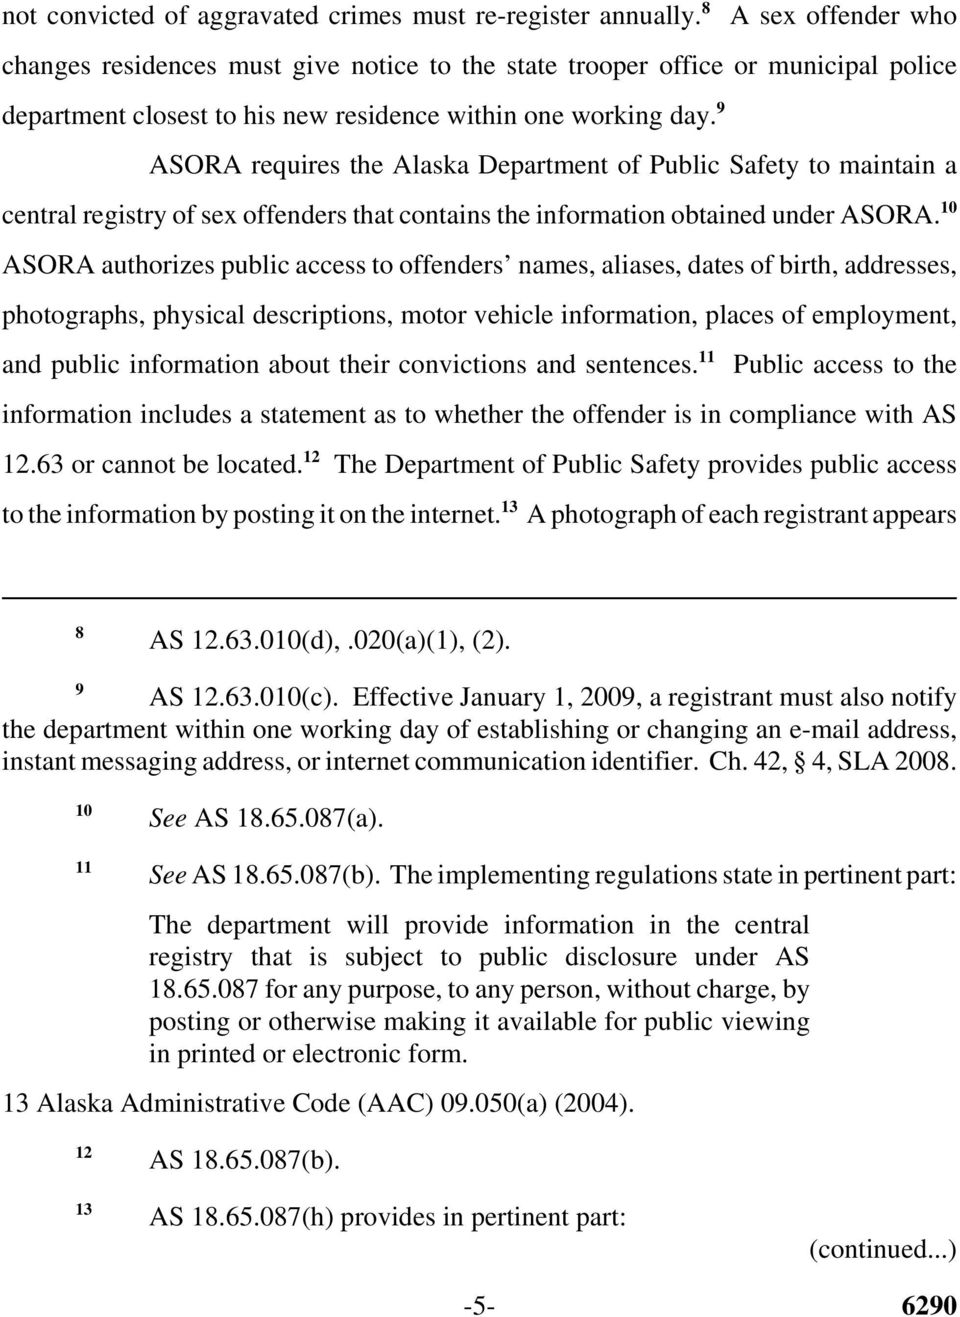 9 ASORA requires the Alaska Department of Public Safety to maintain a central registry of sex offenders that contains the information obtained under ASORA.